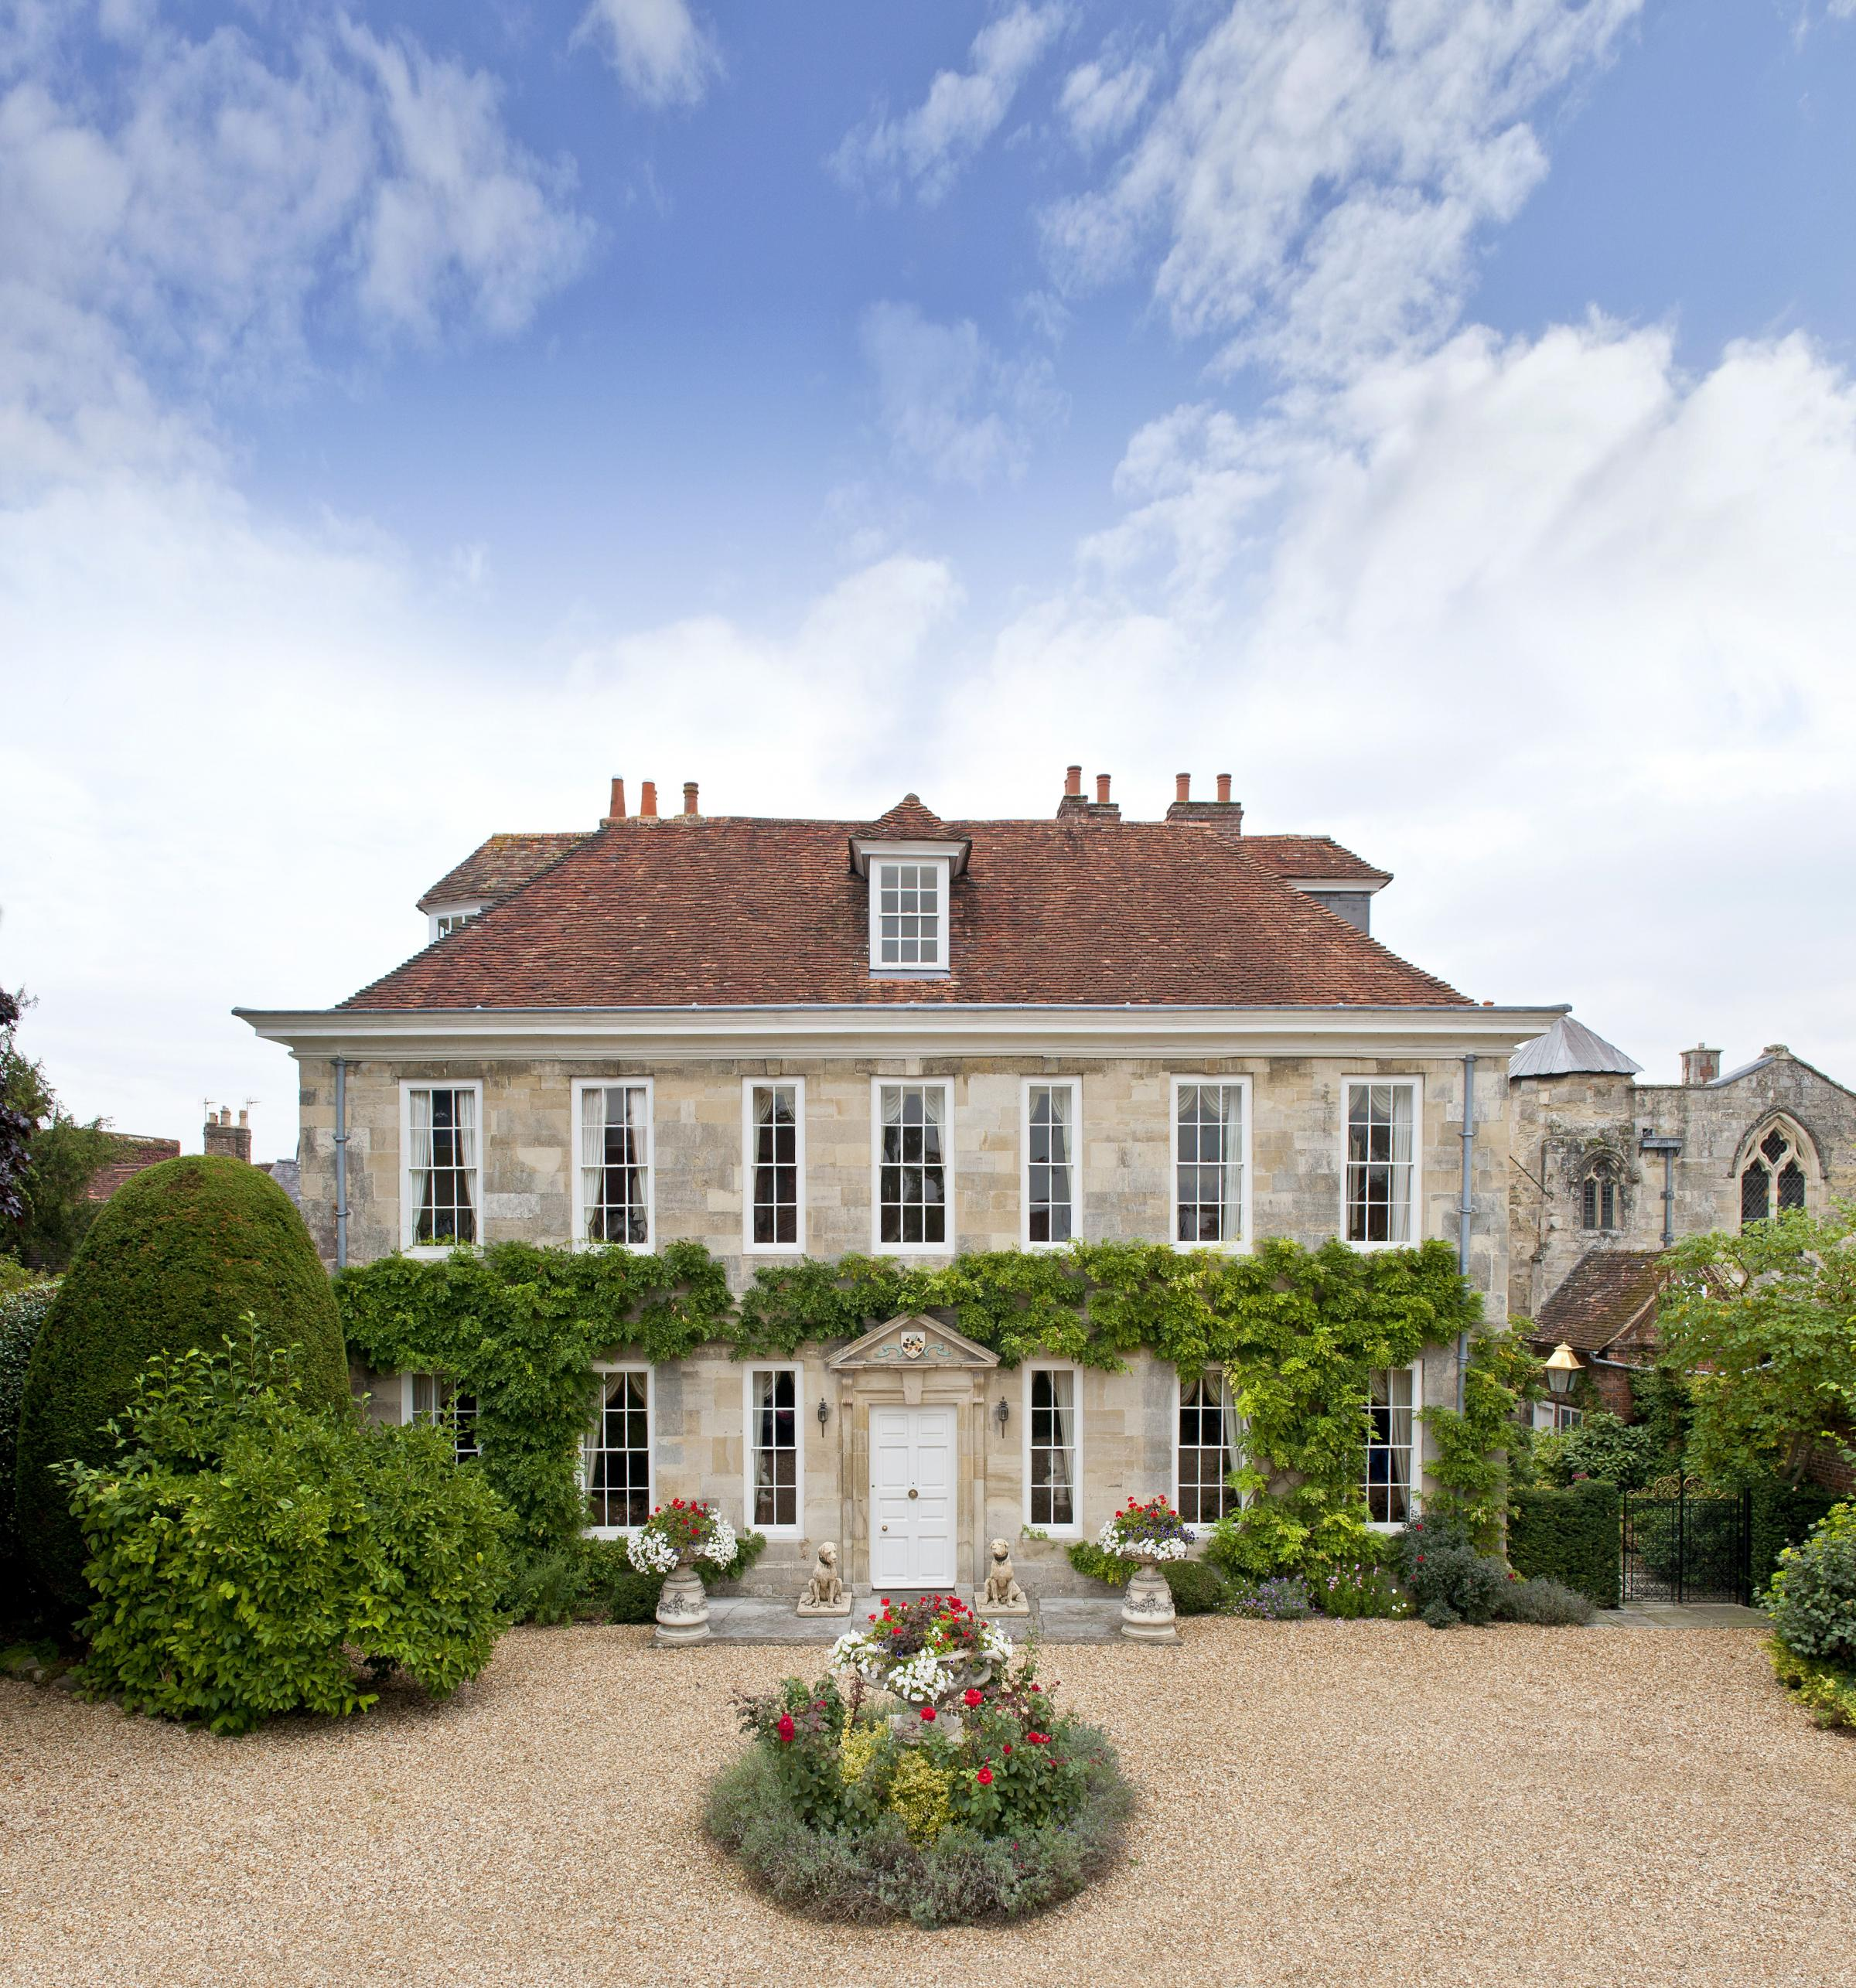 £5 Million Cathedral Close home up for sale